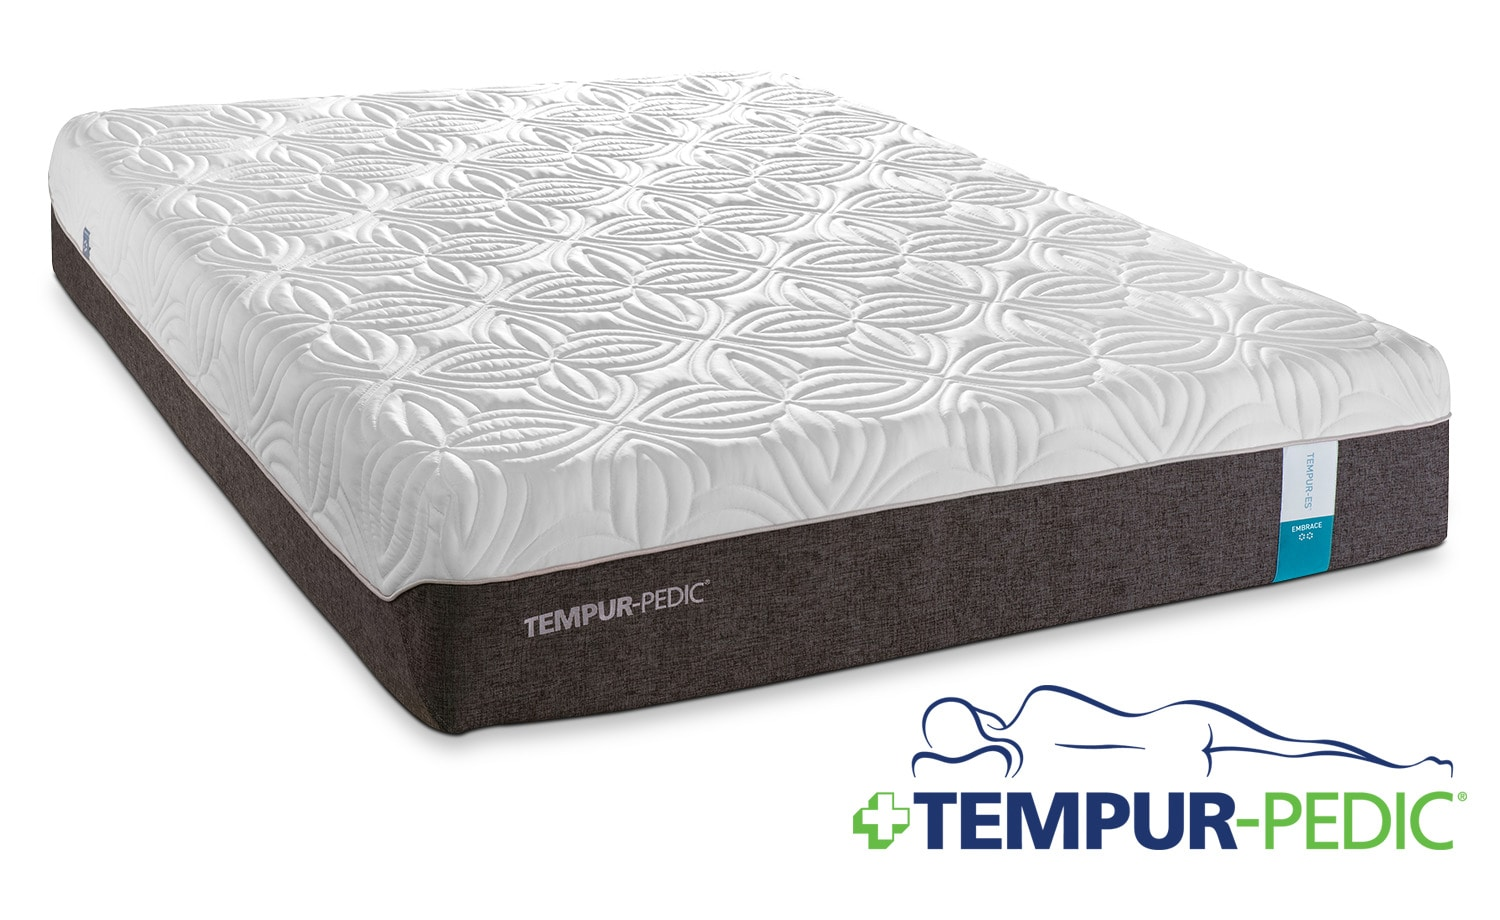 Tempur pedic embrace 2 0 plush queen mattress leon 39 s Queen bed and mattress